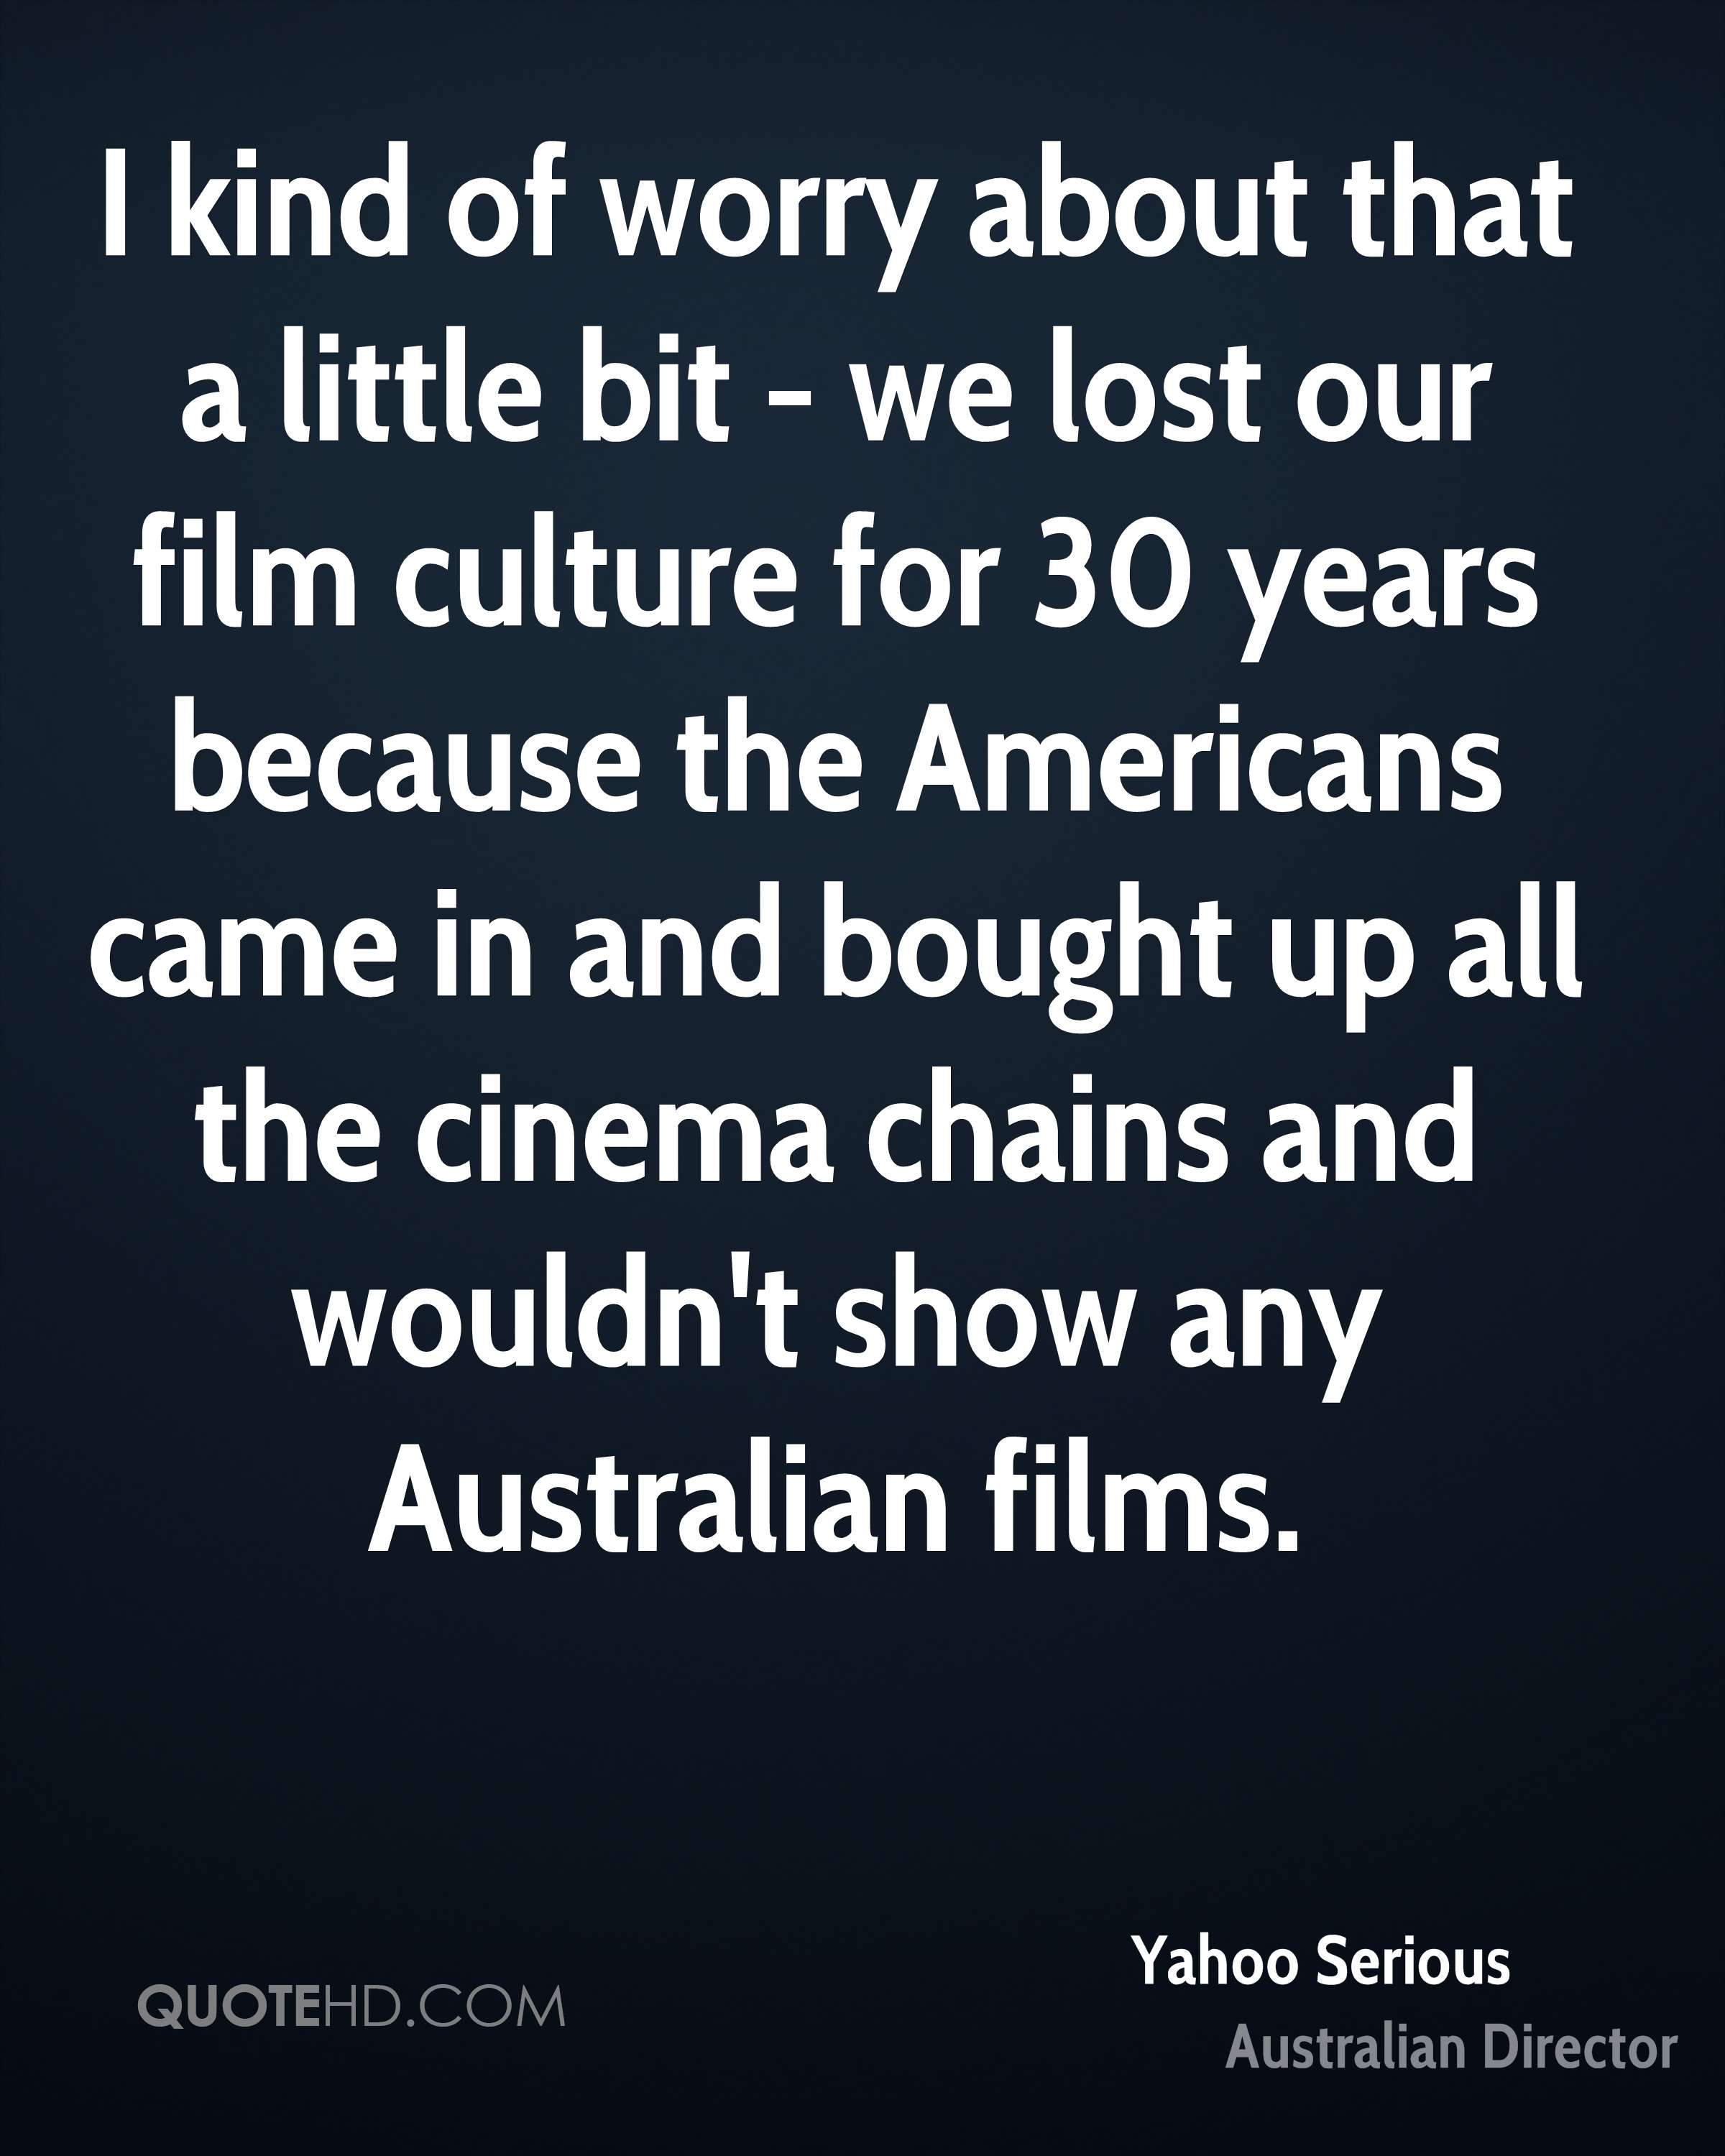 I kind of worry about that a little bit - we lost our film culture for 30 years because the Americans came in and bought up all the cinema chains and wouldn't show any Australian films.